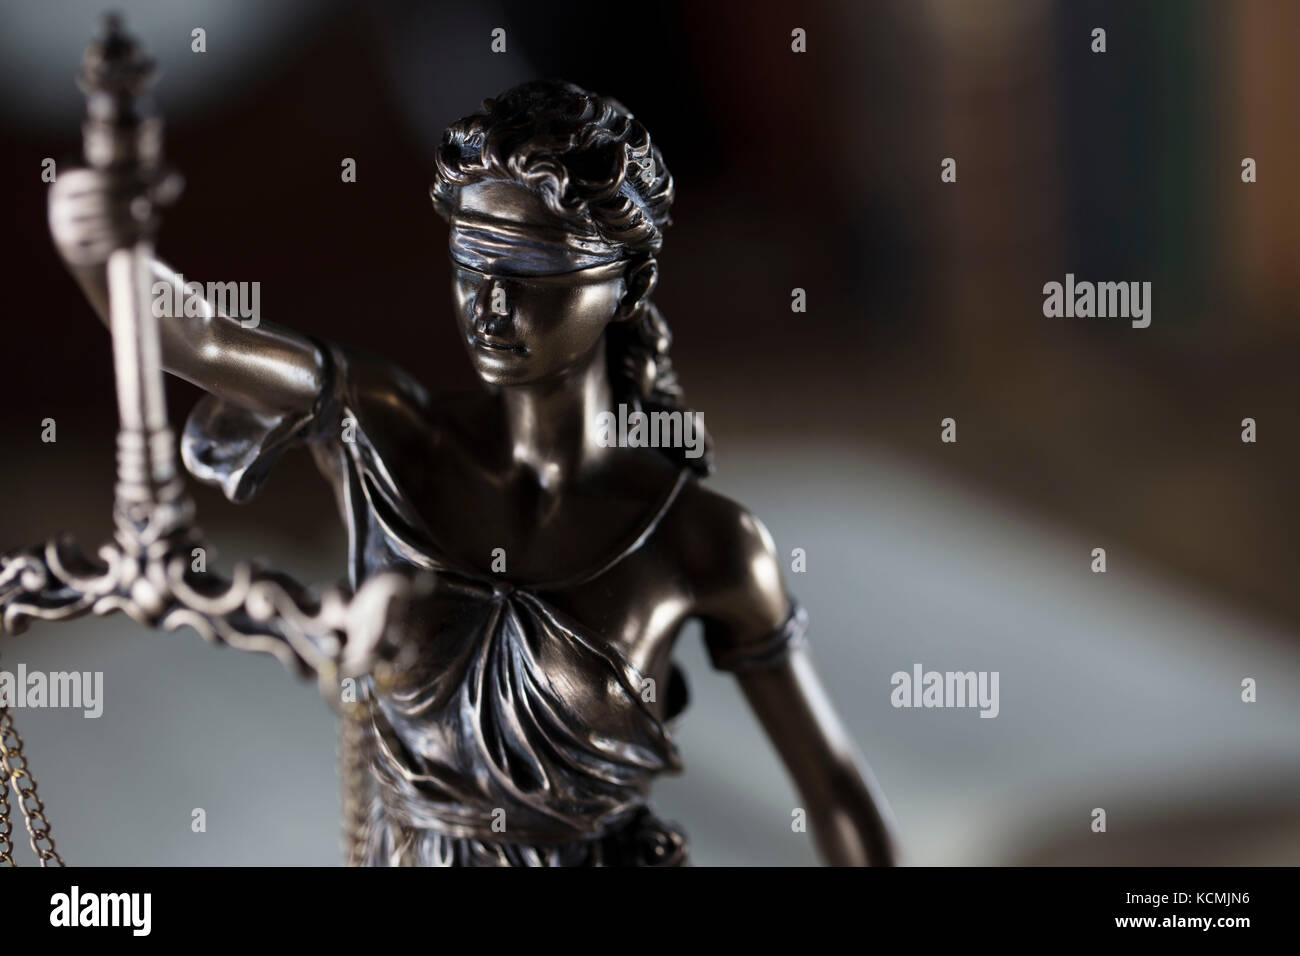 Old court library. Vintage clock. Statue of justice and gavel. Law concept. - Stock Image